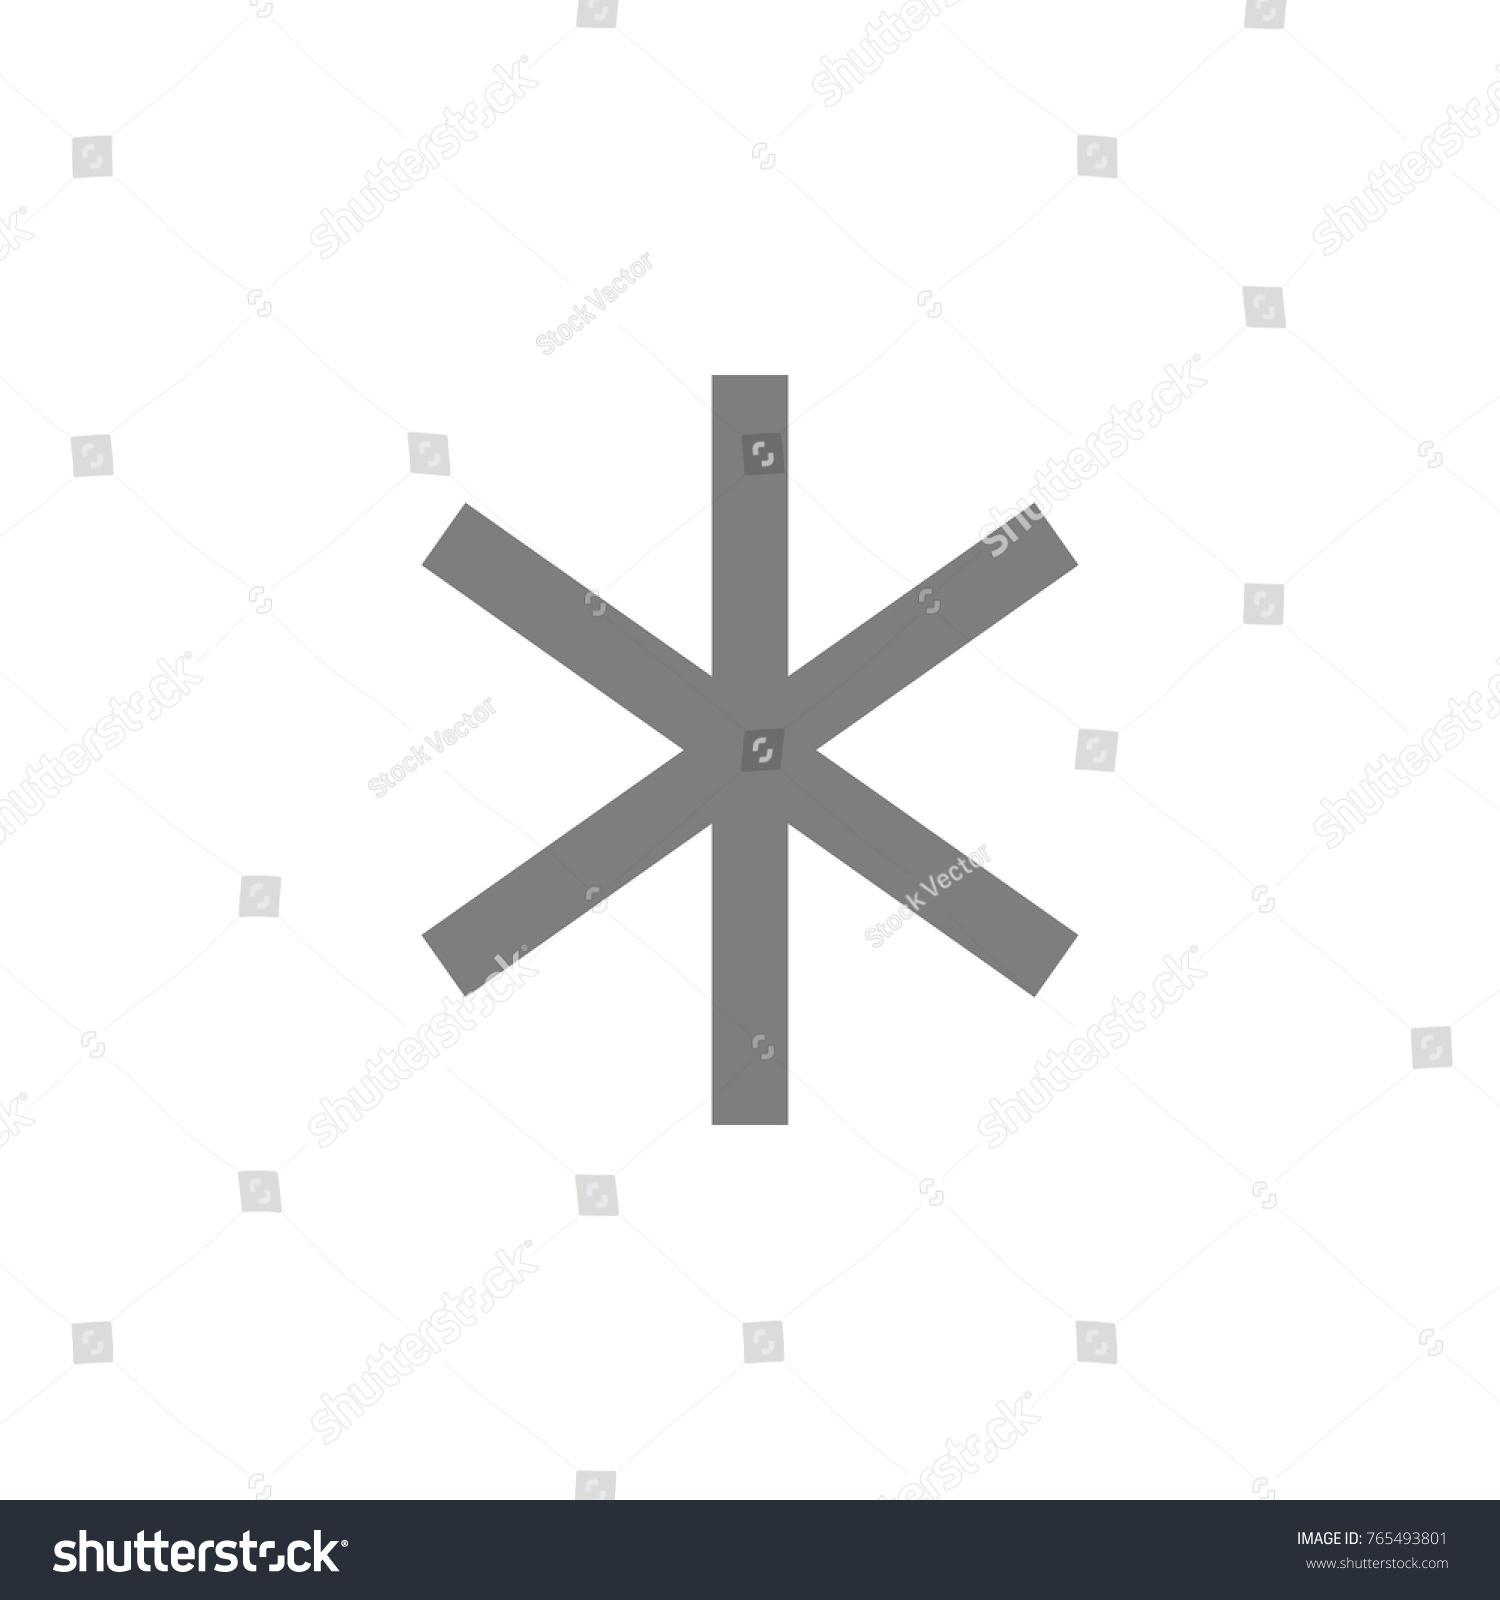 Phone key star icon web element stock illustration 765493801 phone key star icon web element premium quality graphic design signs symbols collection biocorpaavc Image collections